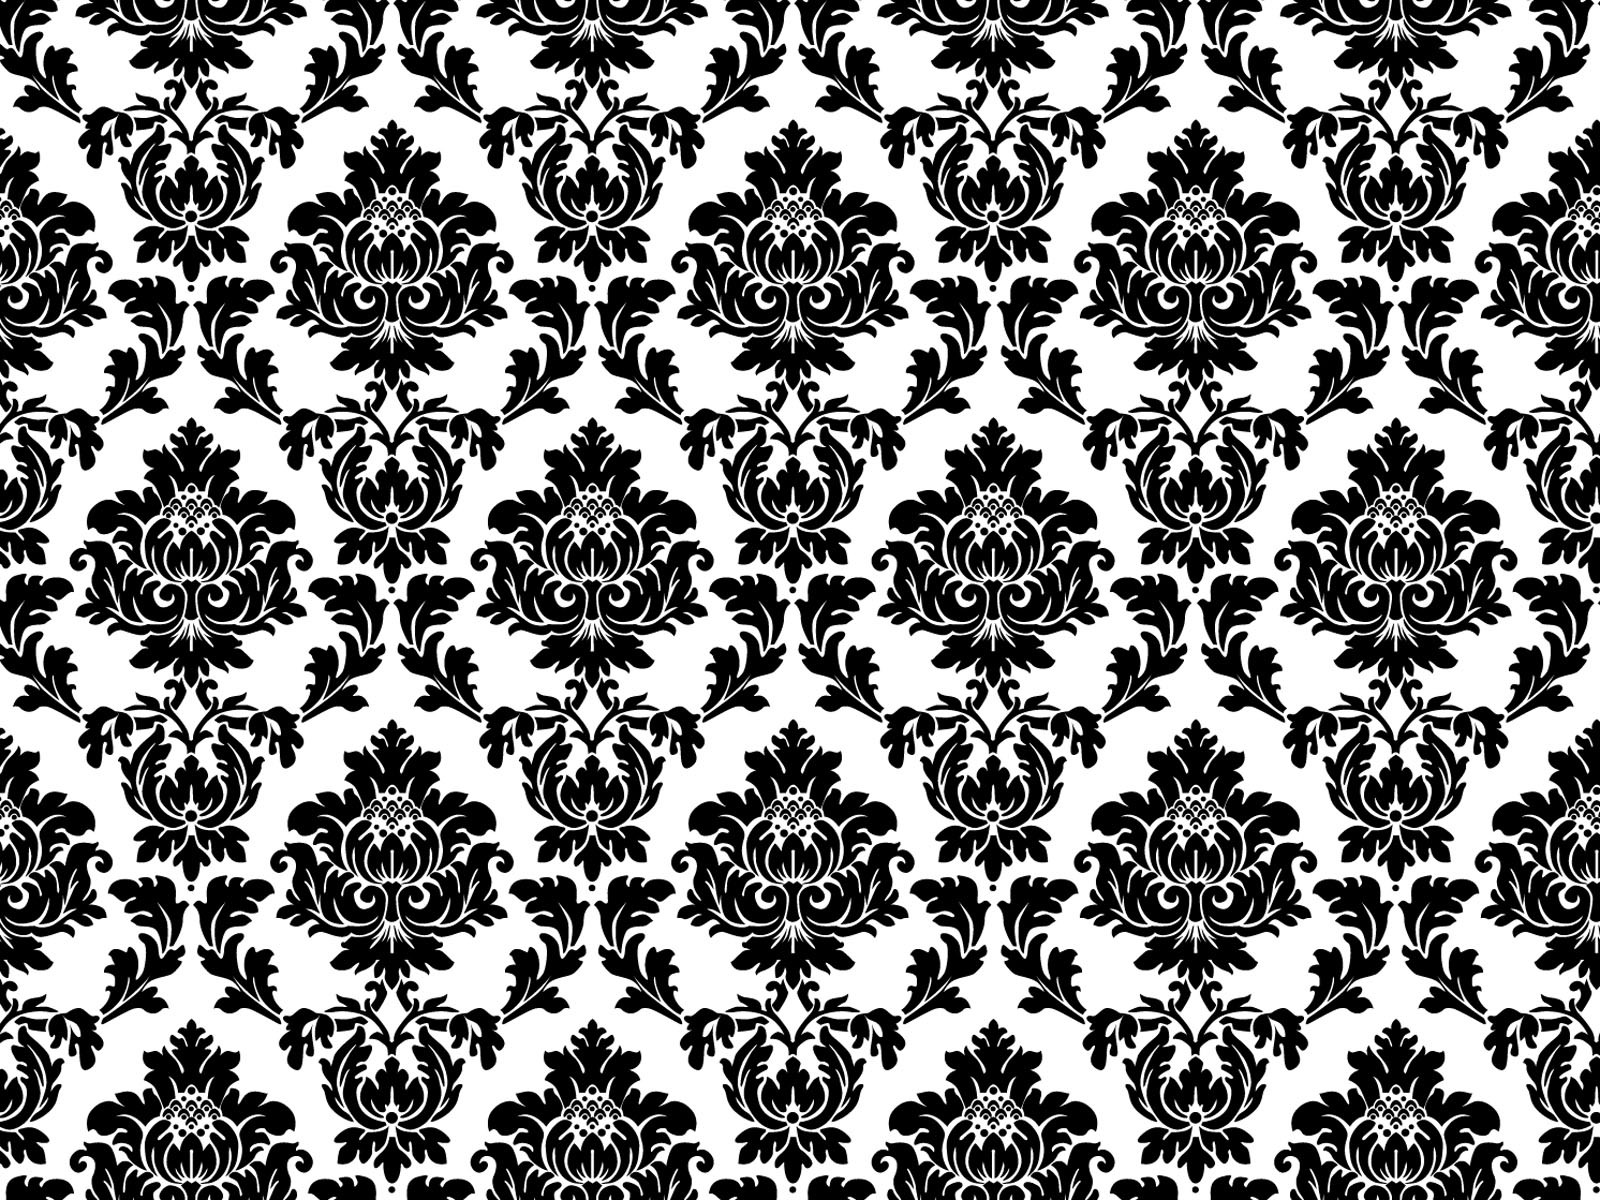 1000+ images about Pattern on Pinterest | Black backgrounds, Mint